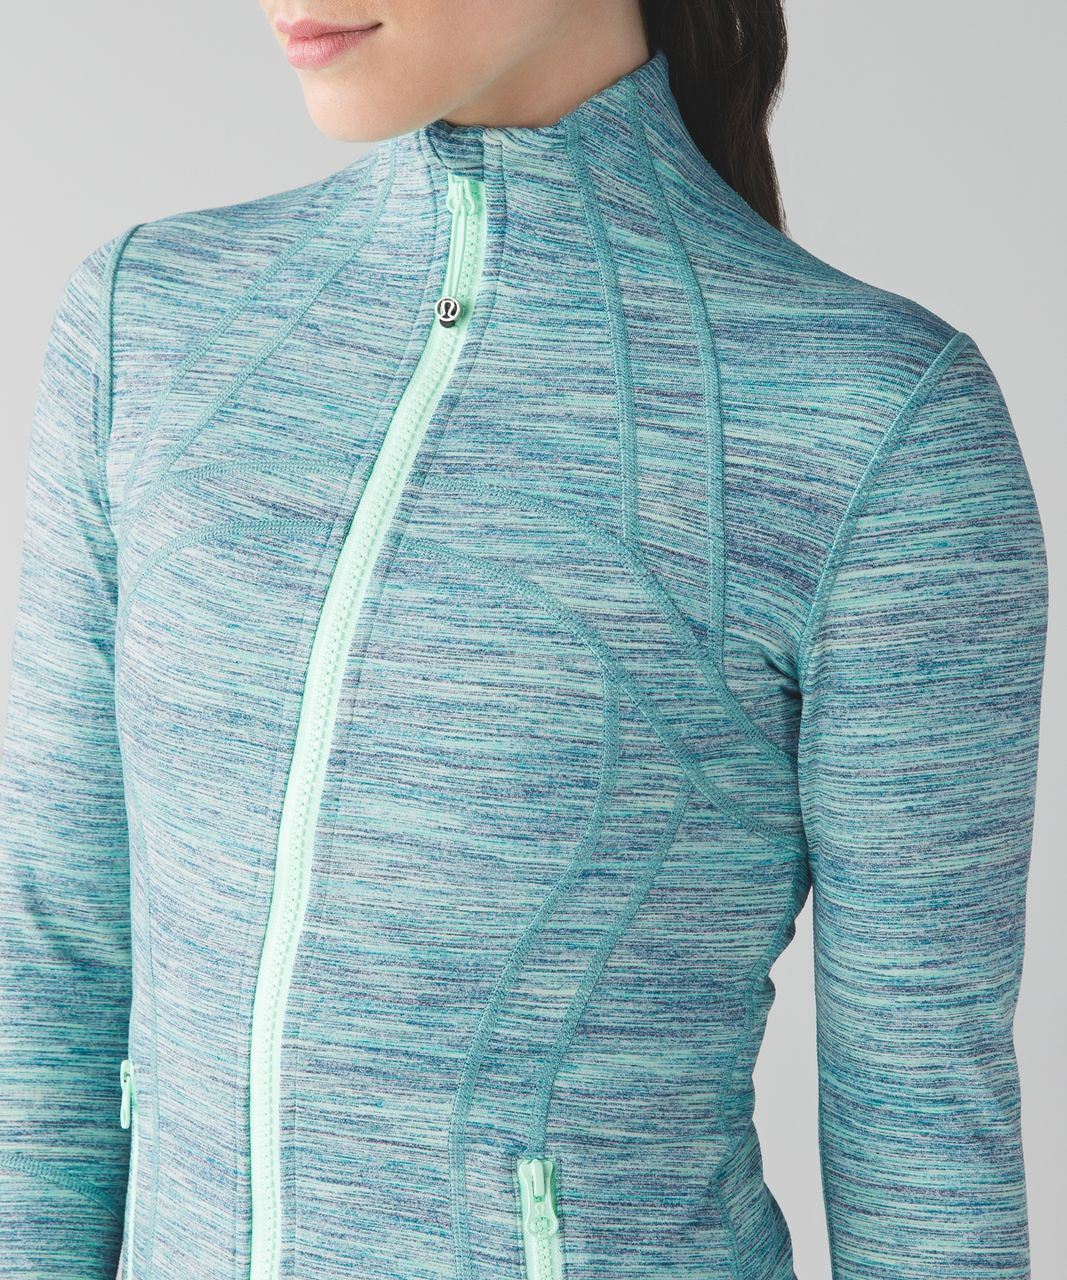 Lululemon Define Jacket - Space Dye Camo Alberta Lake Fresh Teal